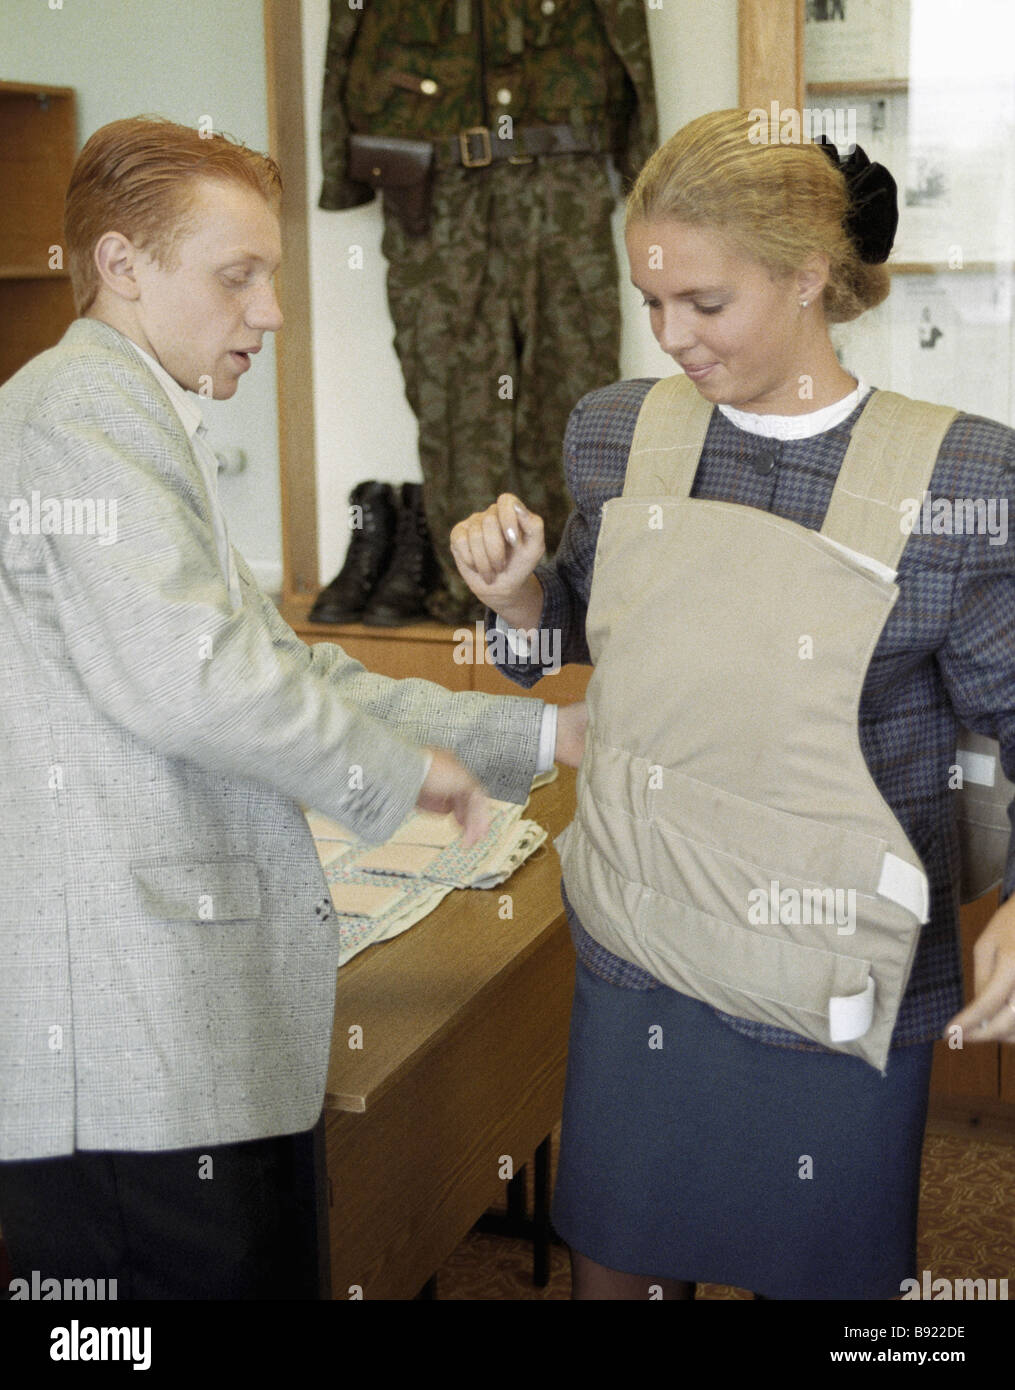 Tax police officer tries on a bullet proof jacket - Stock Image